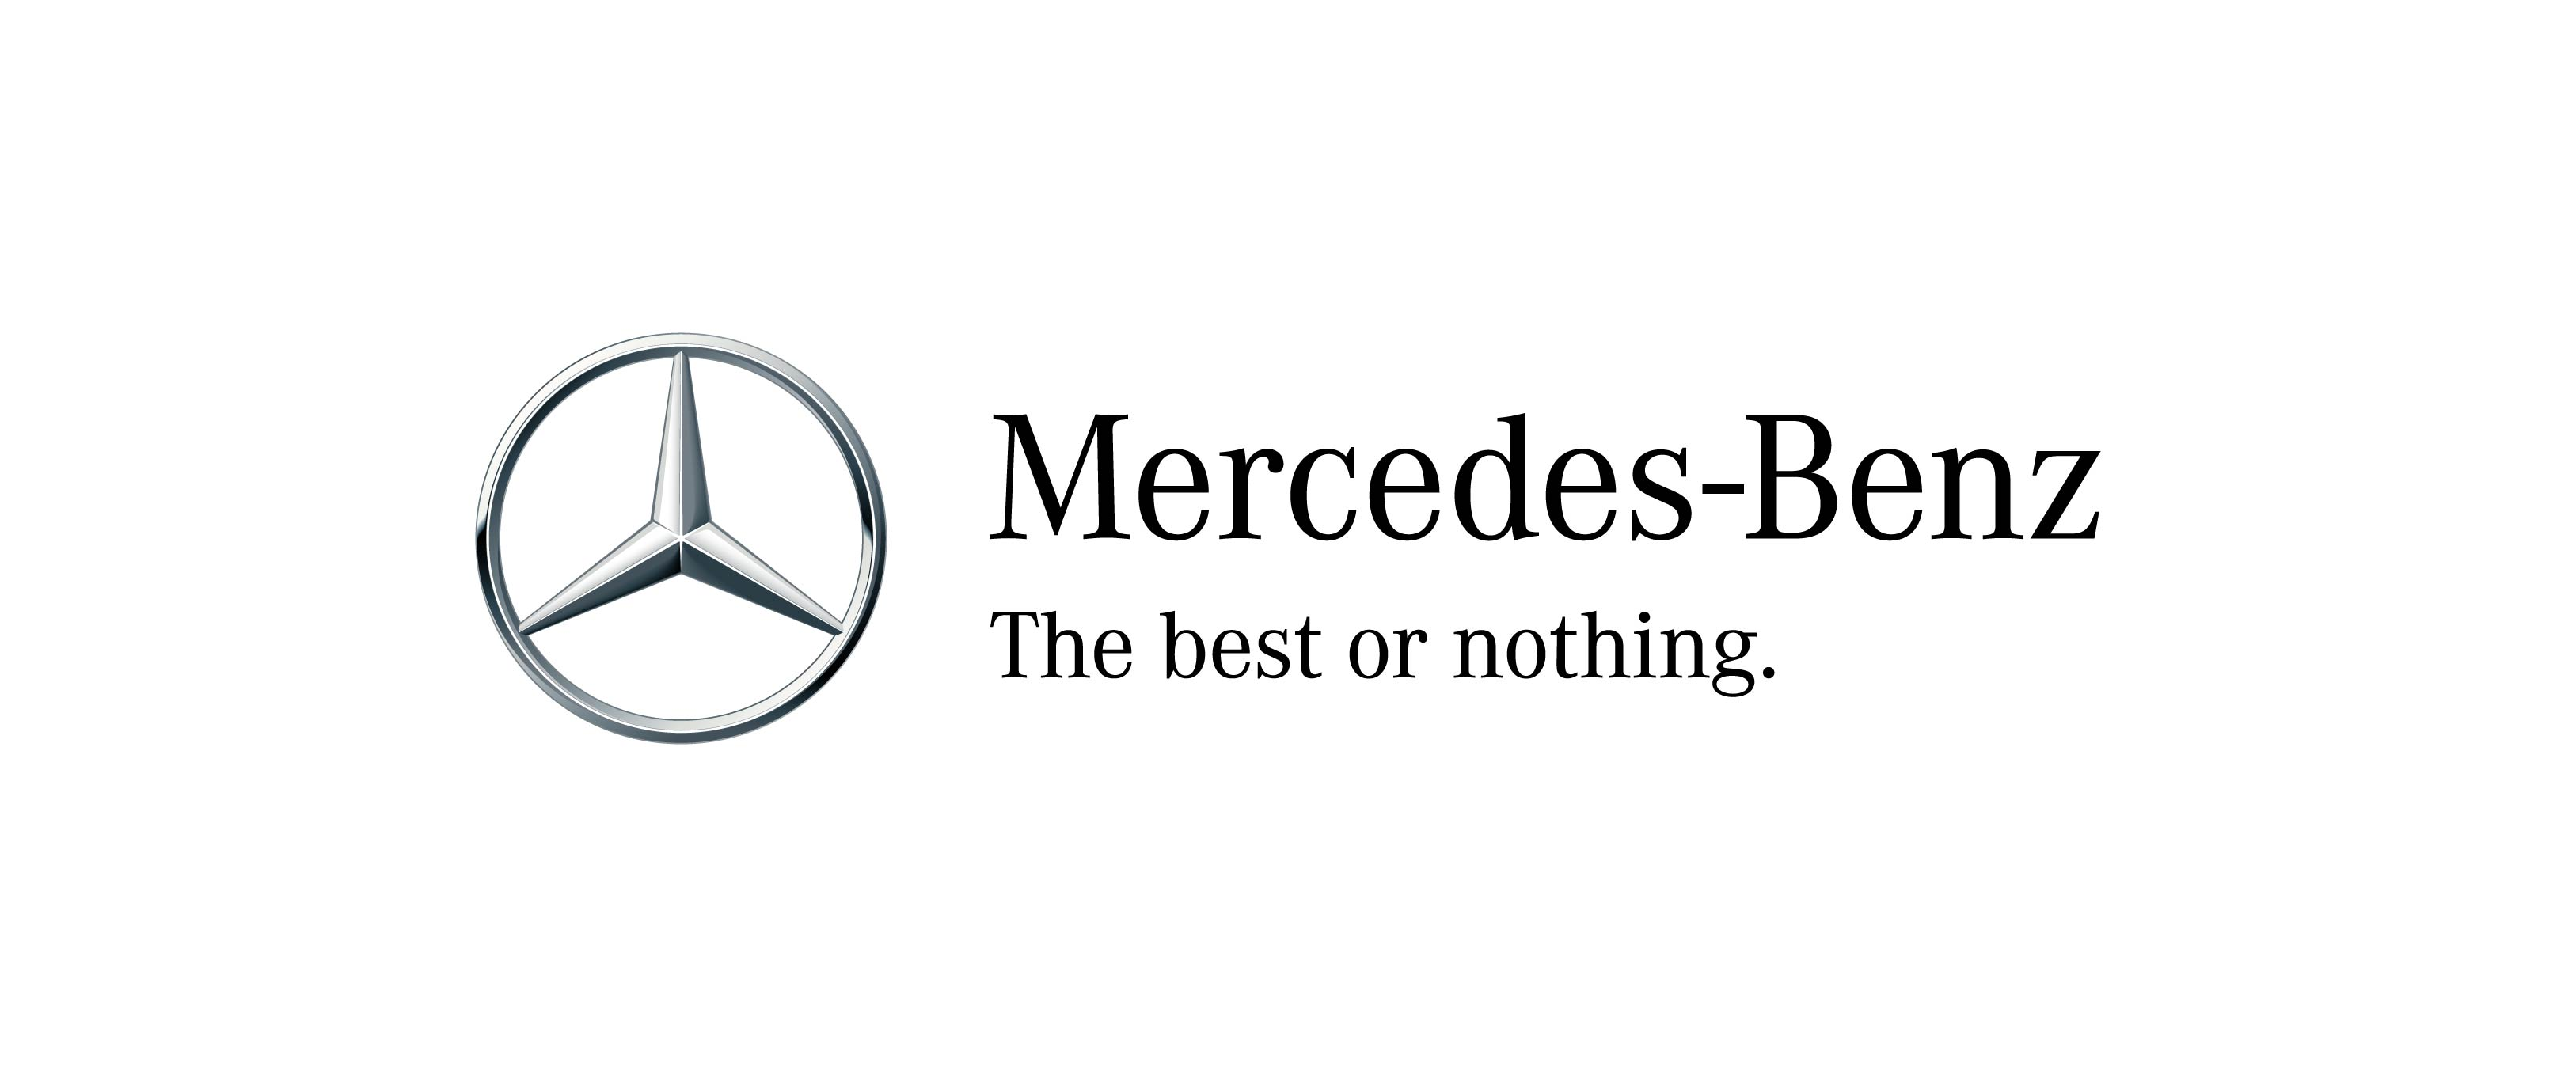 Image gallery mercedez logo 2016 for Mercedes benz use